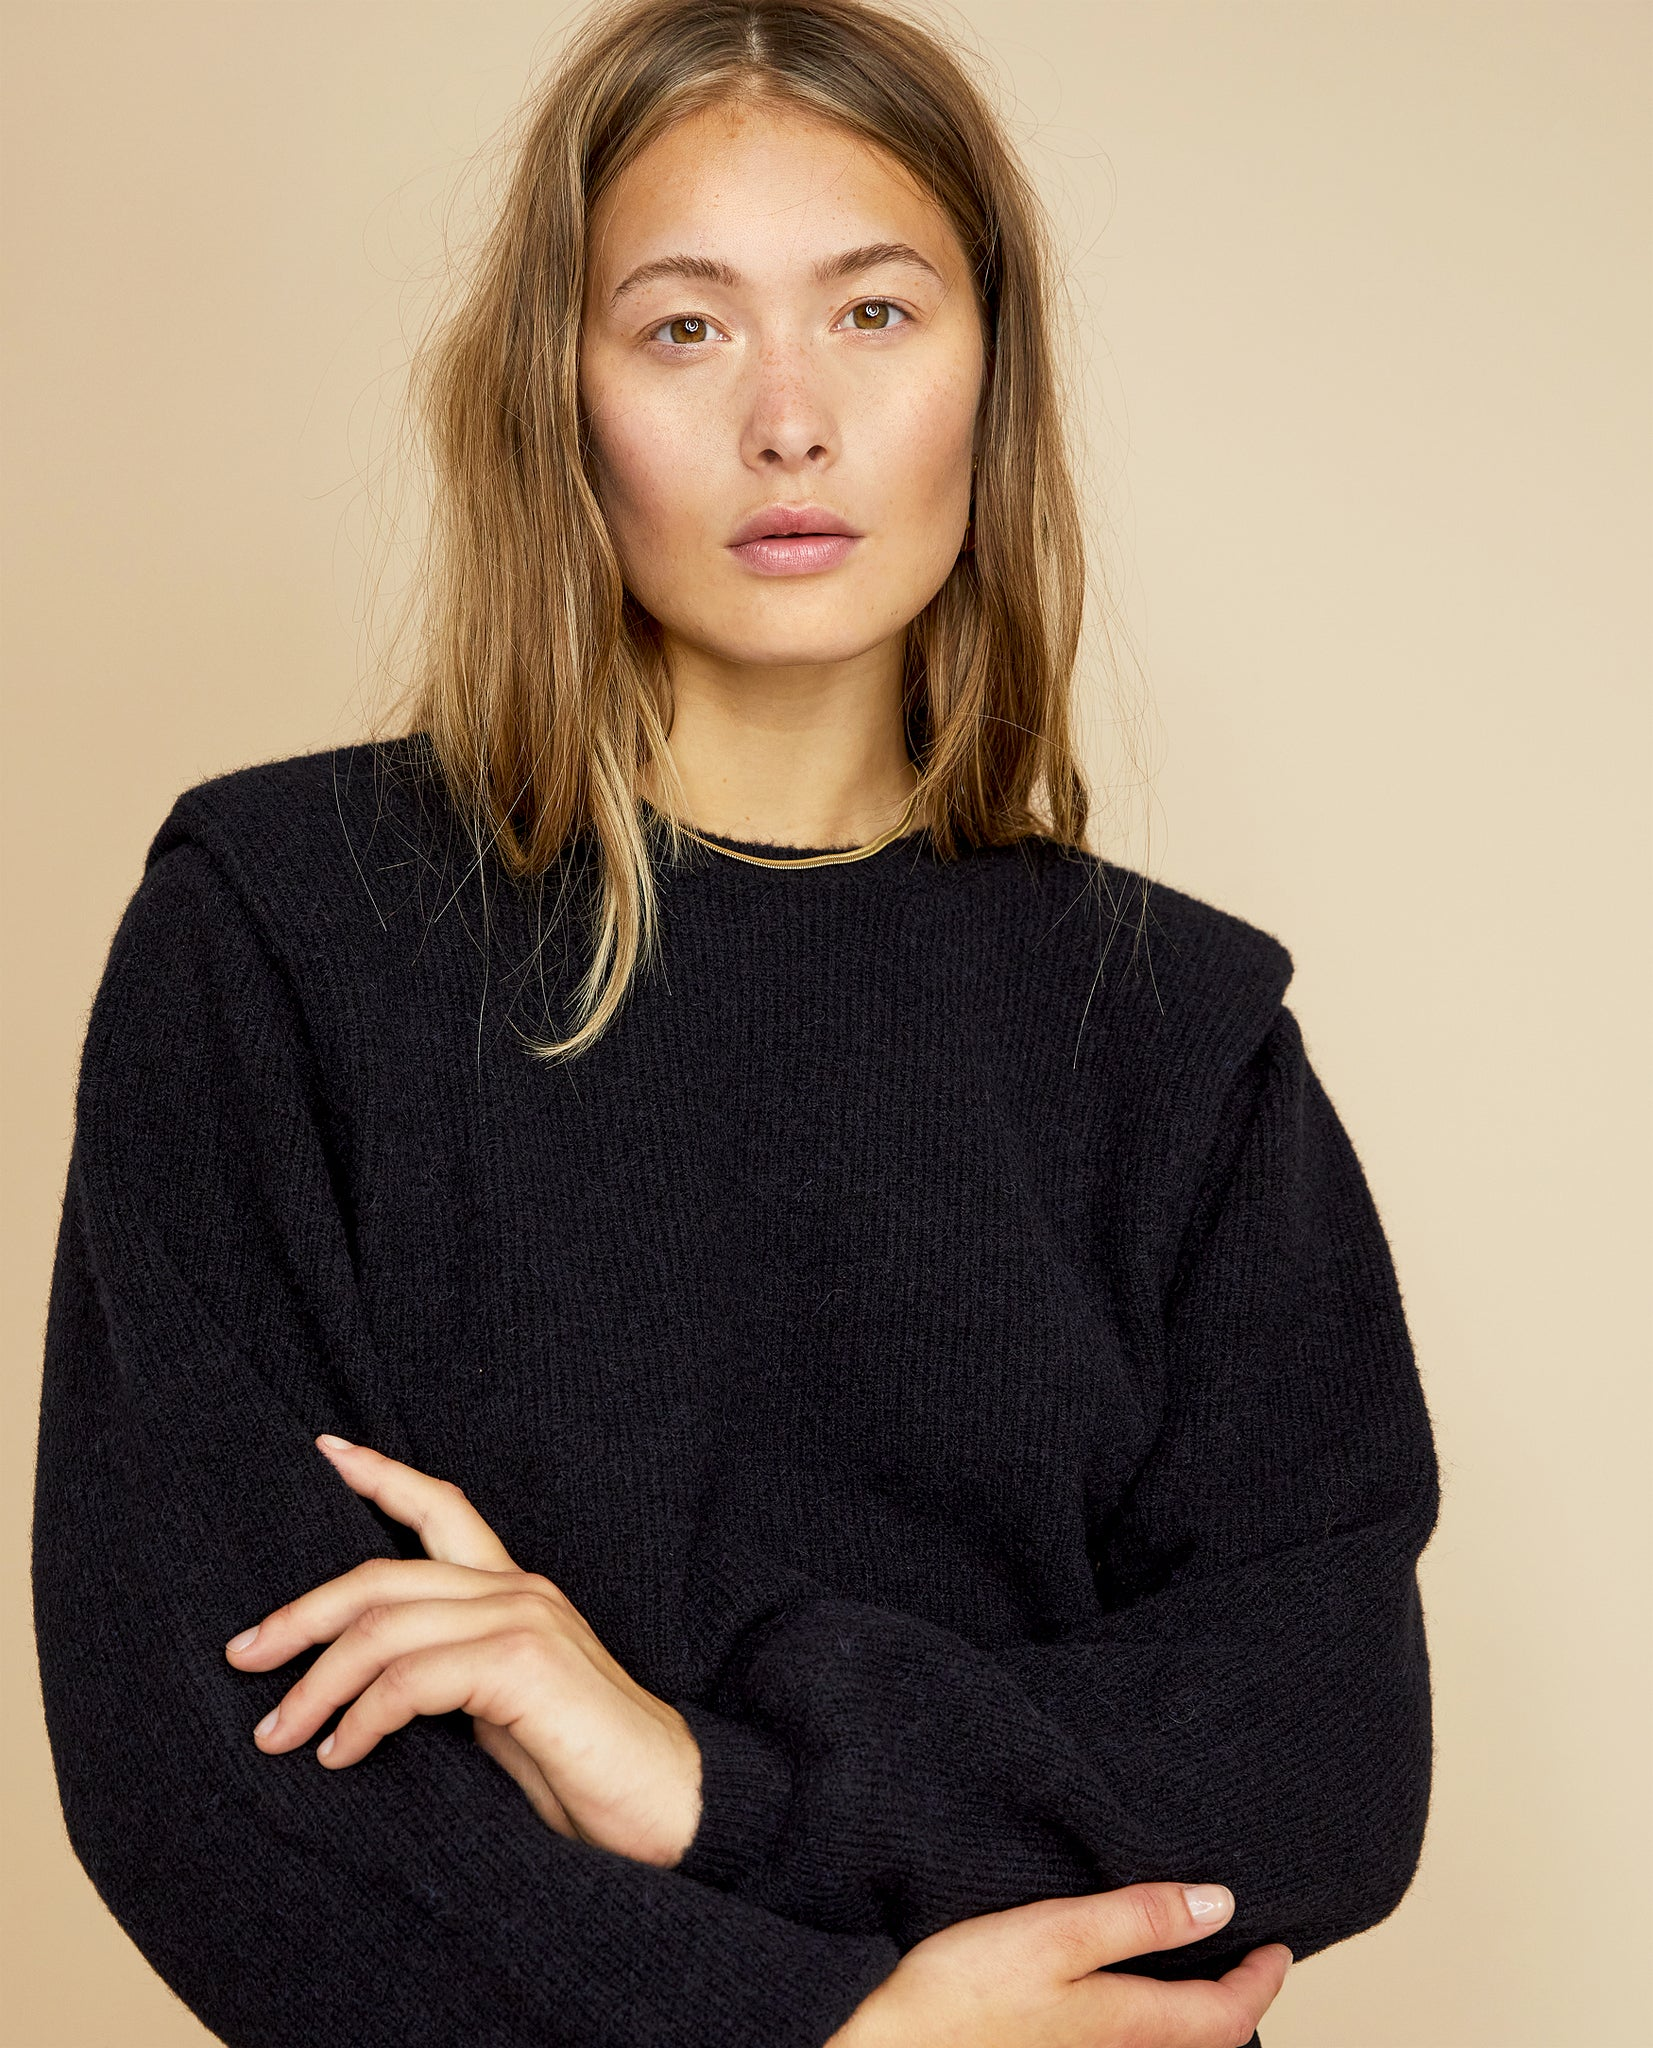 CAMILLE SHOULDER PADDED PULLOVER IN BLACK BY LES COYOTES DE PARIS